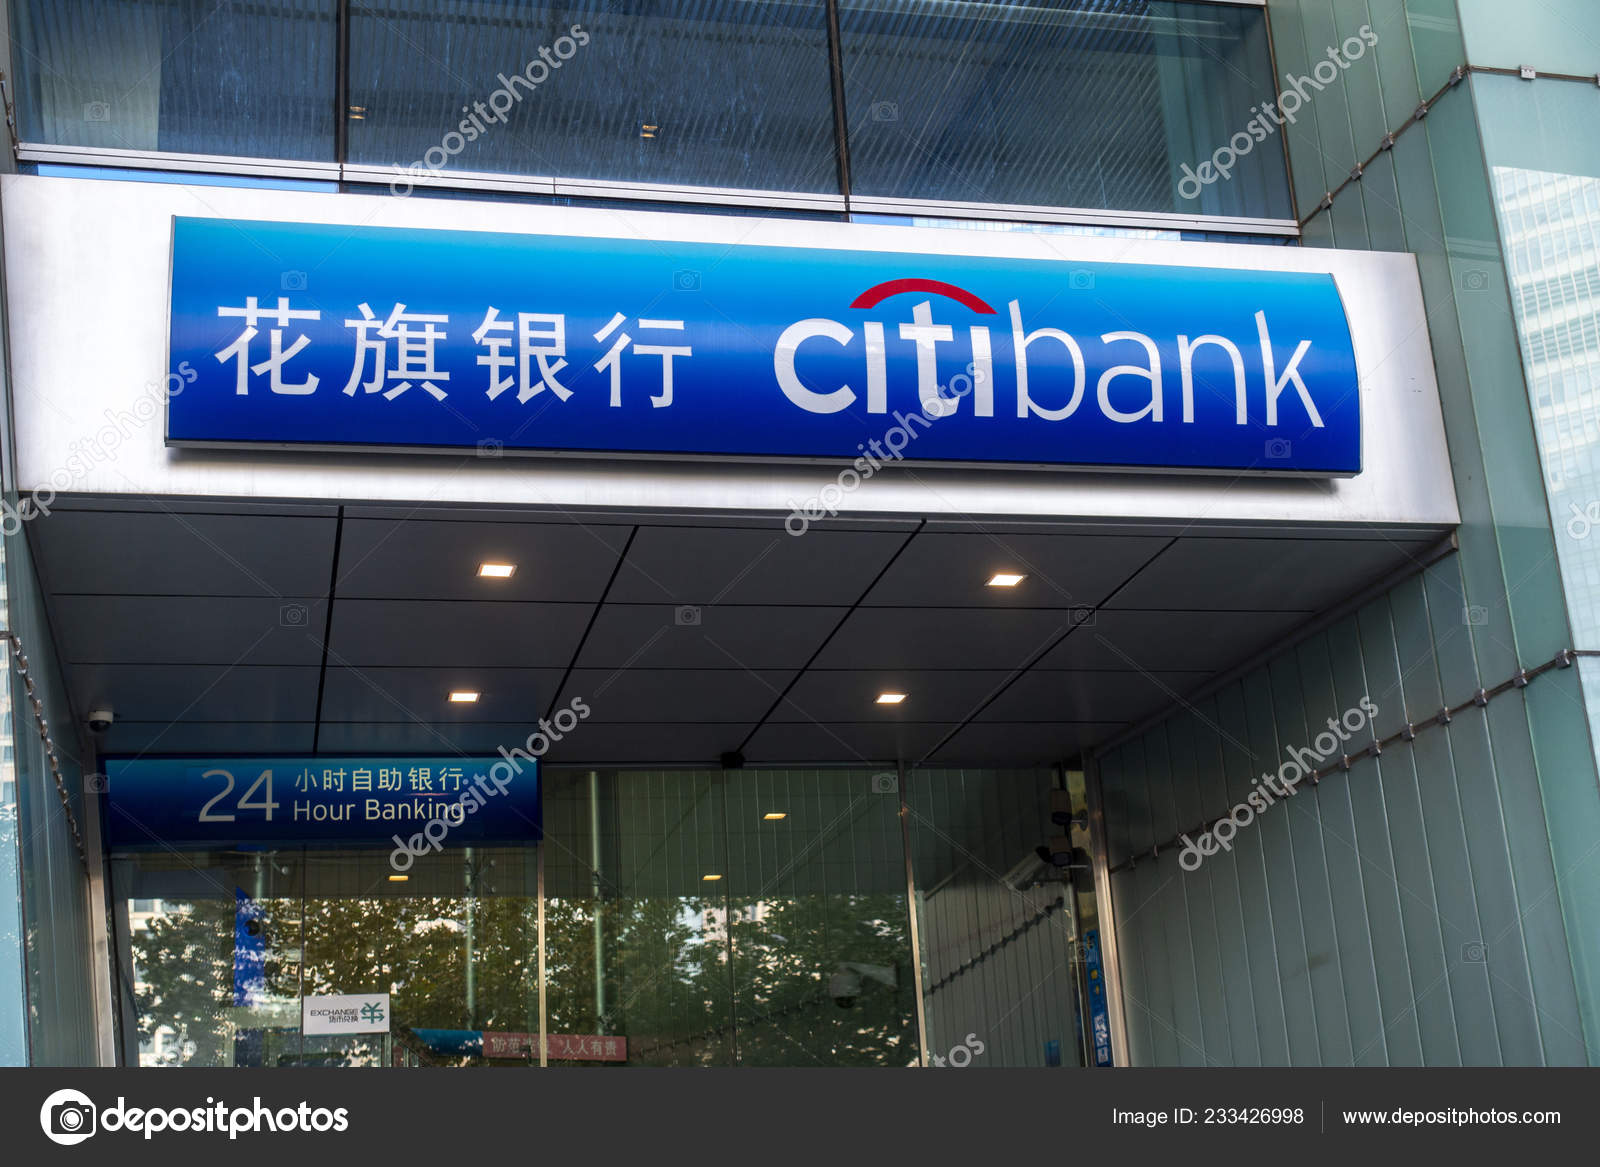 Citibank in china